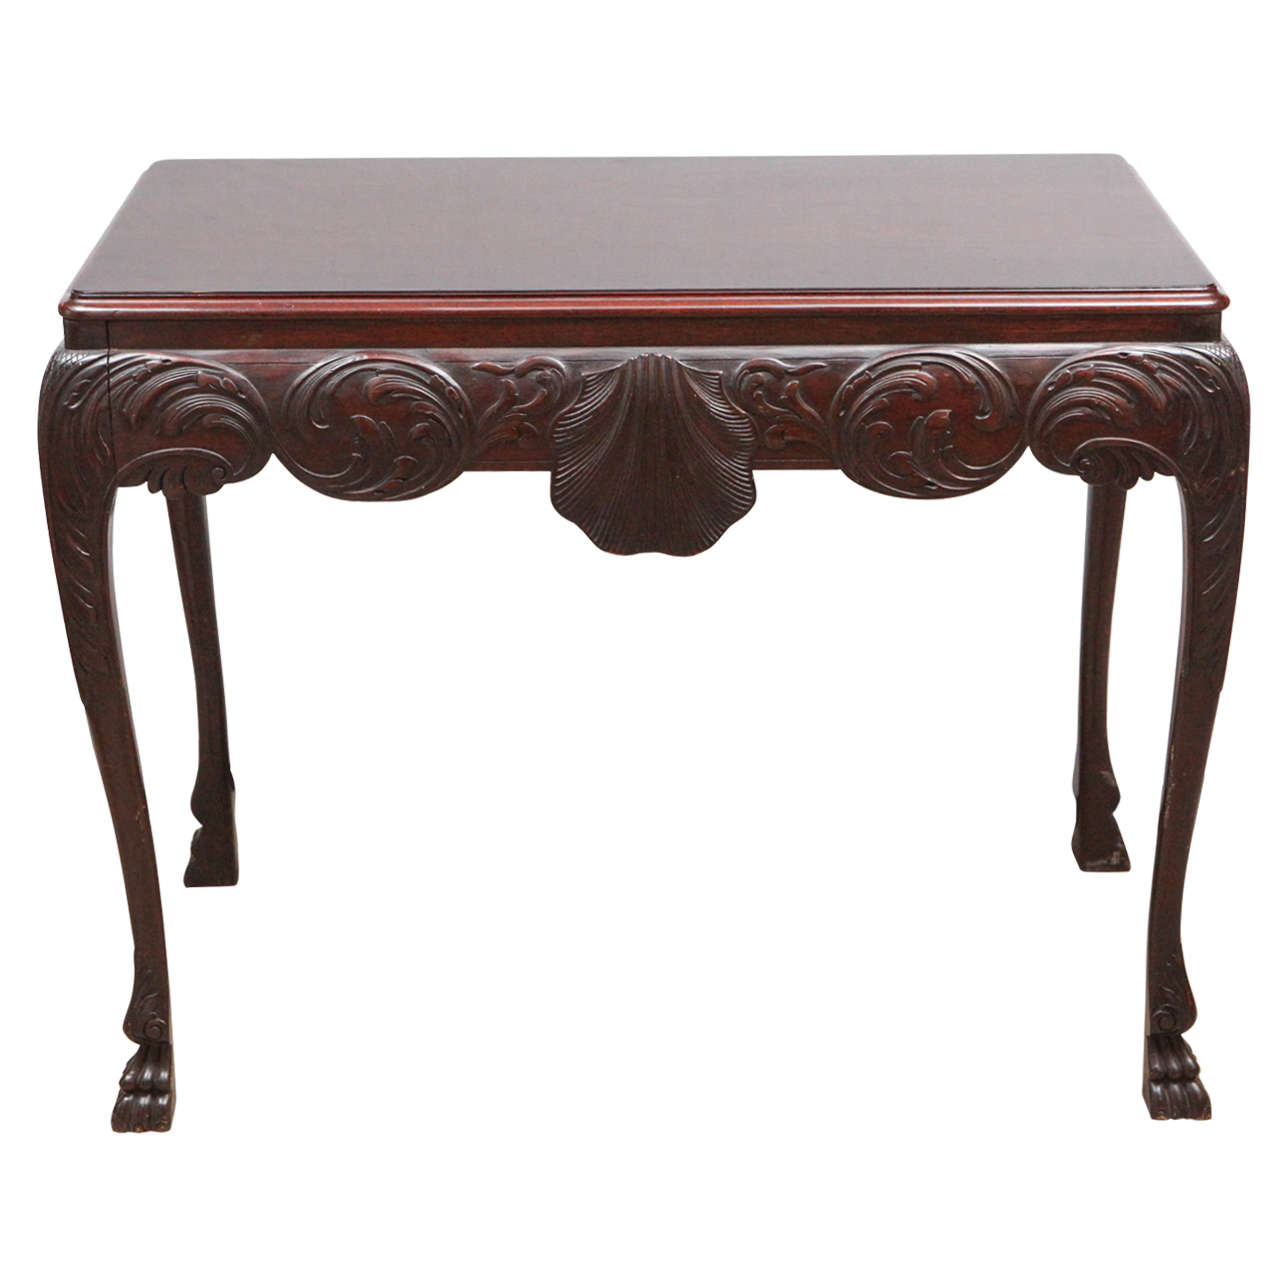 19th Century English Mahogany Console Table with Single Drawer For Sale